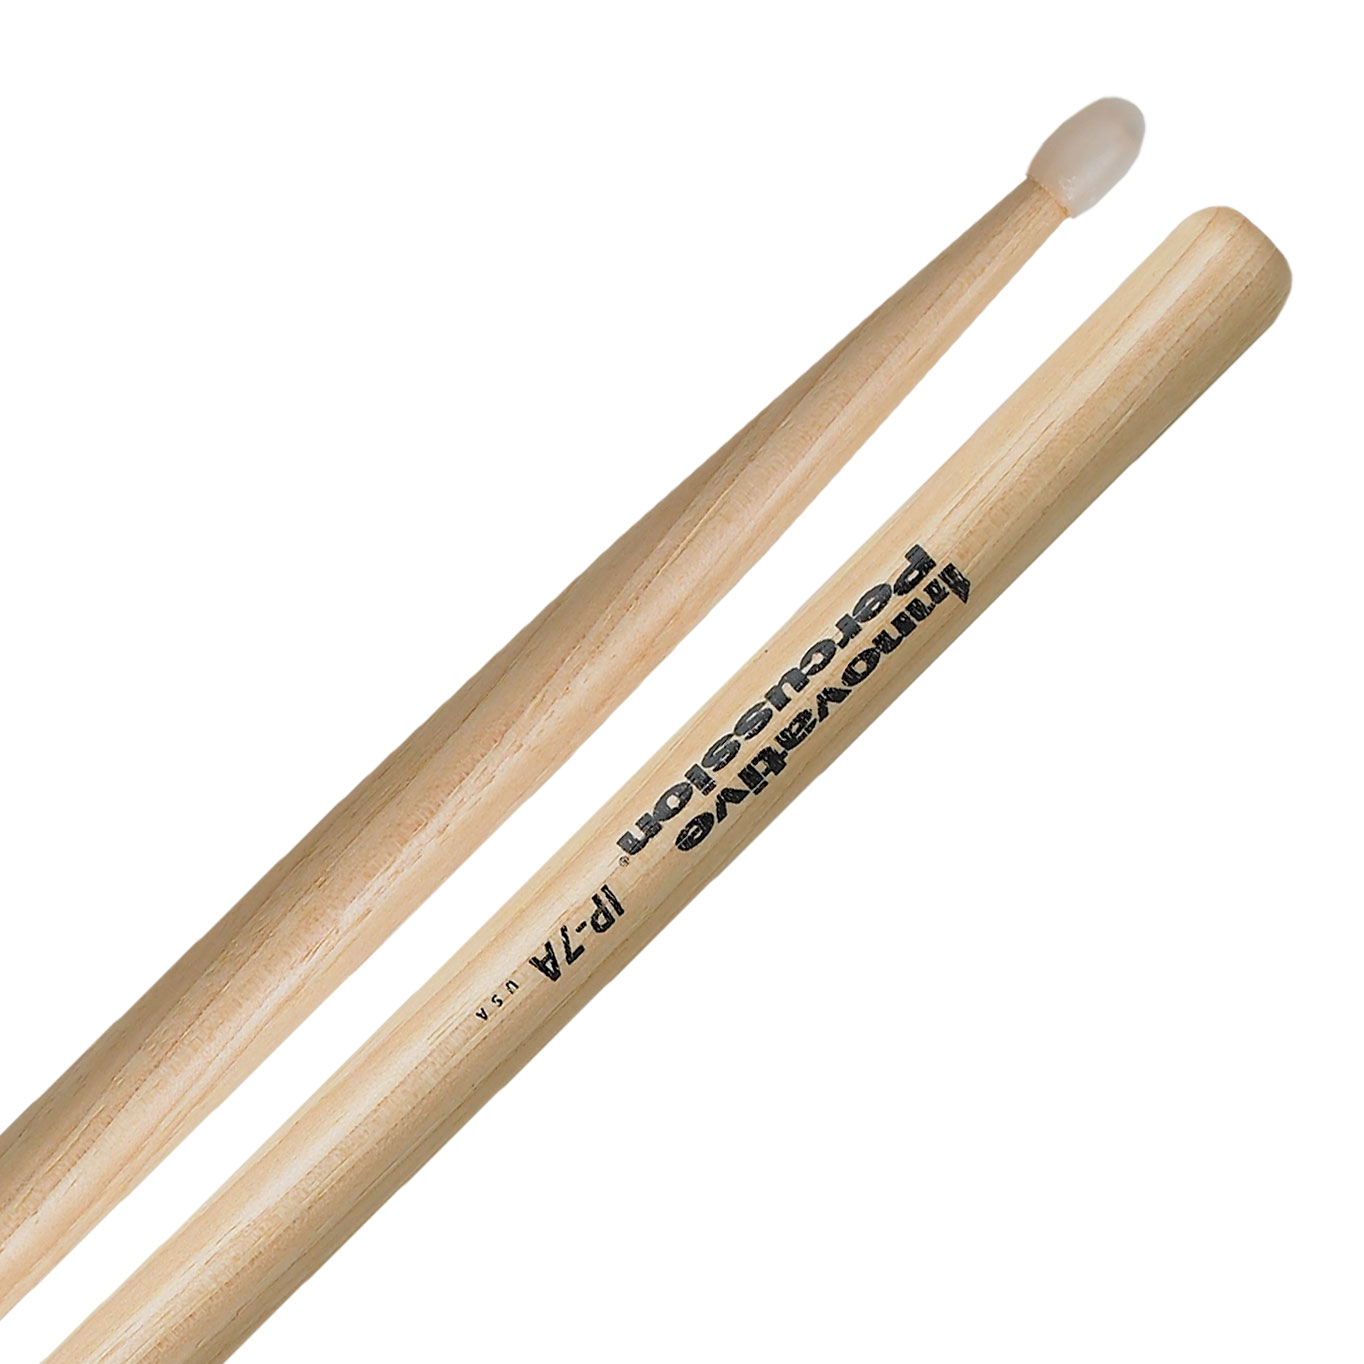 Innovative Percussion 7A Nylon Tip Drumsticks